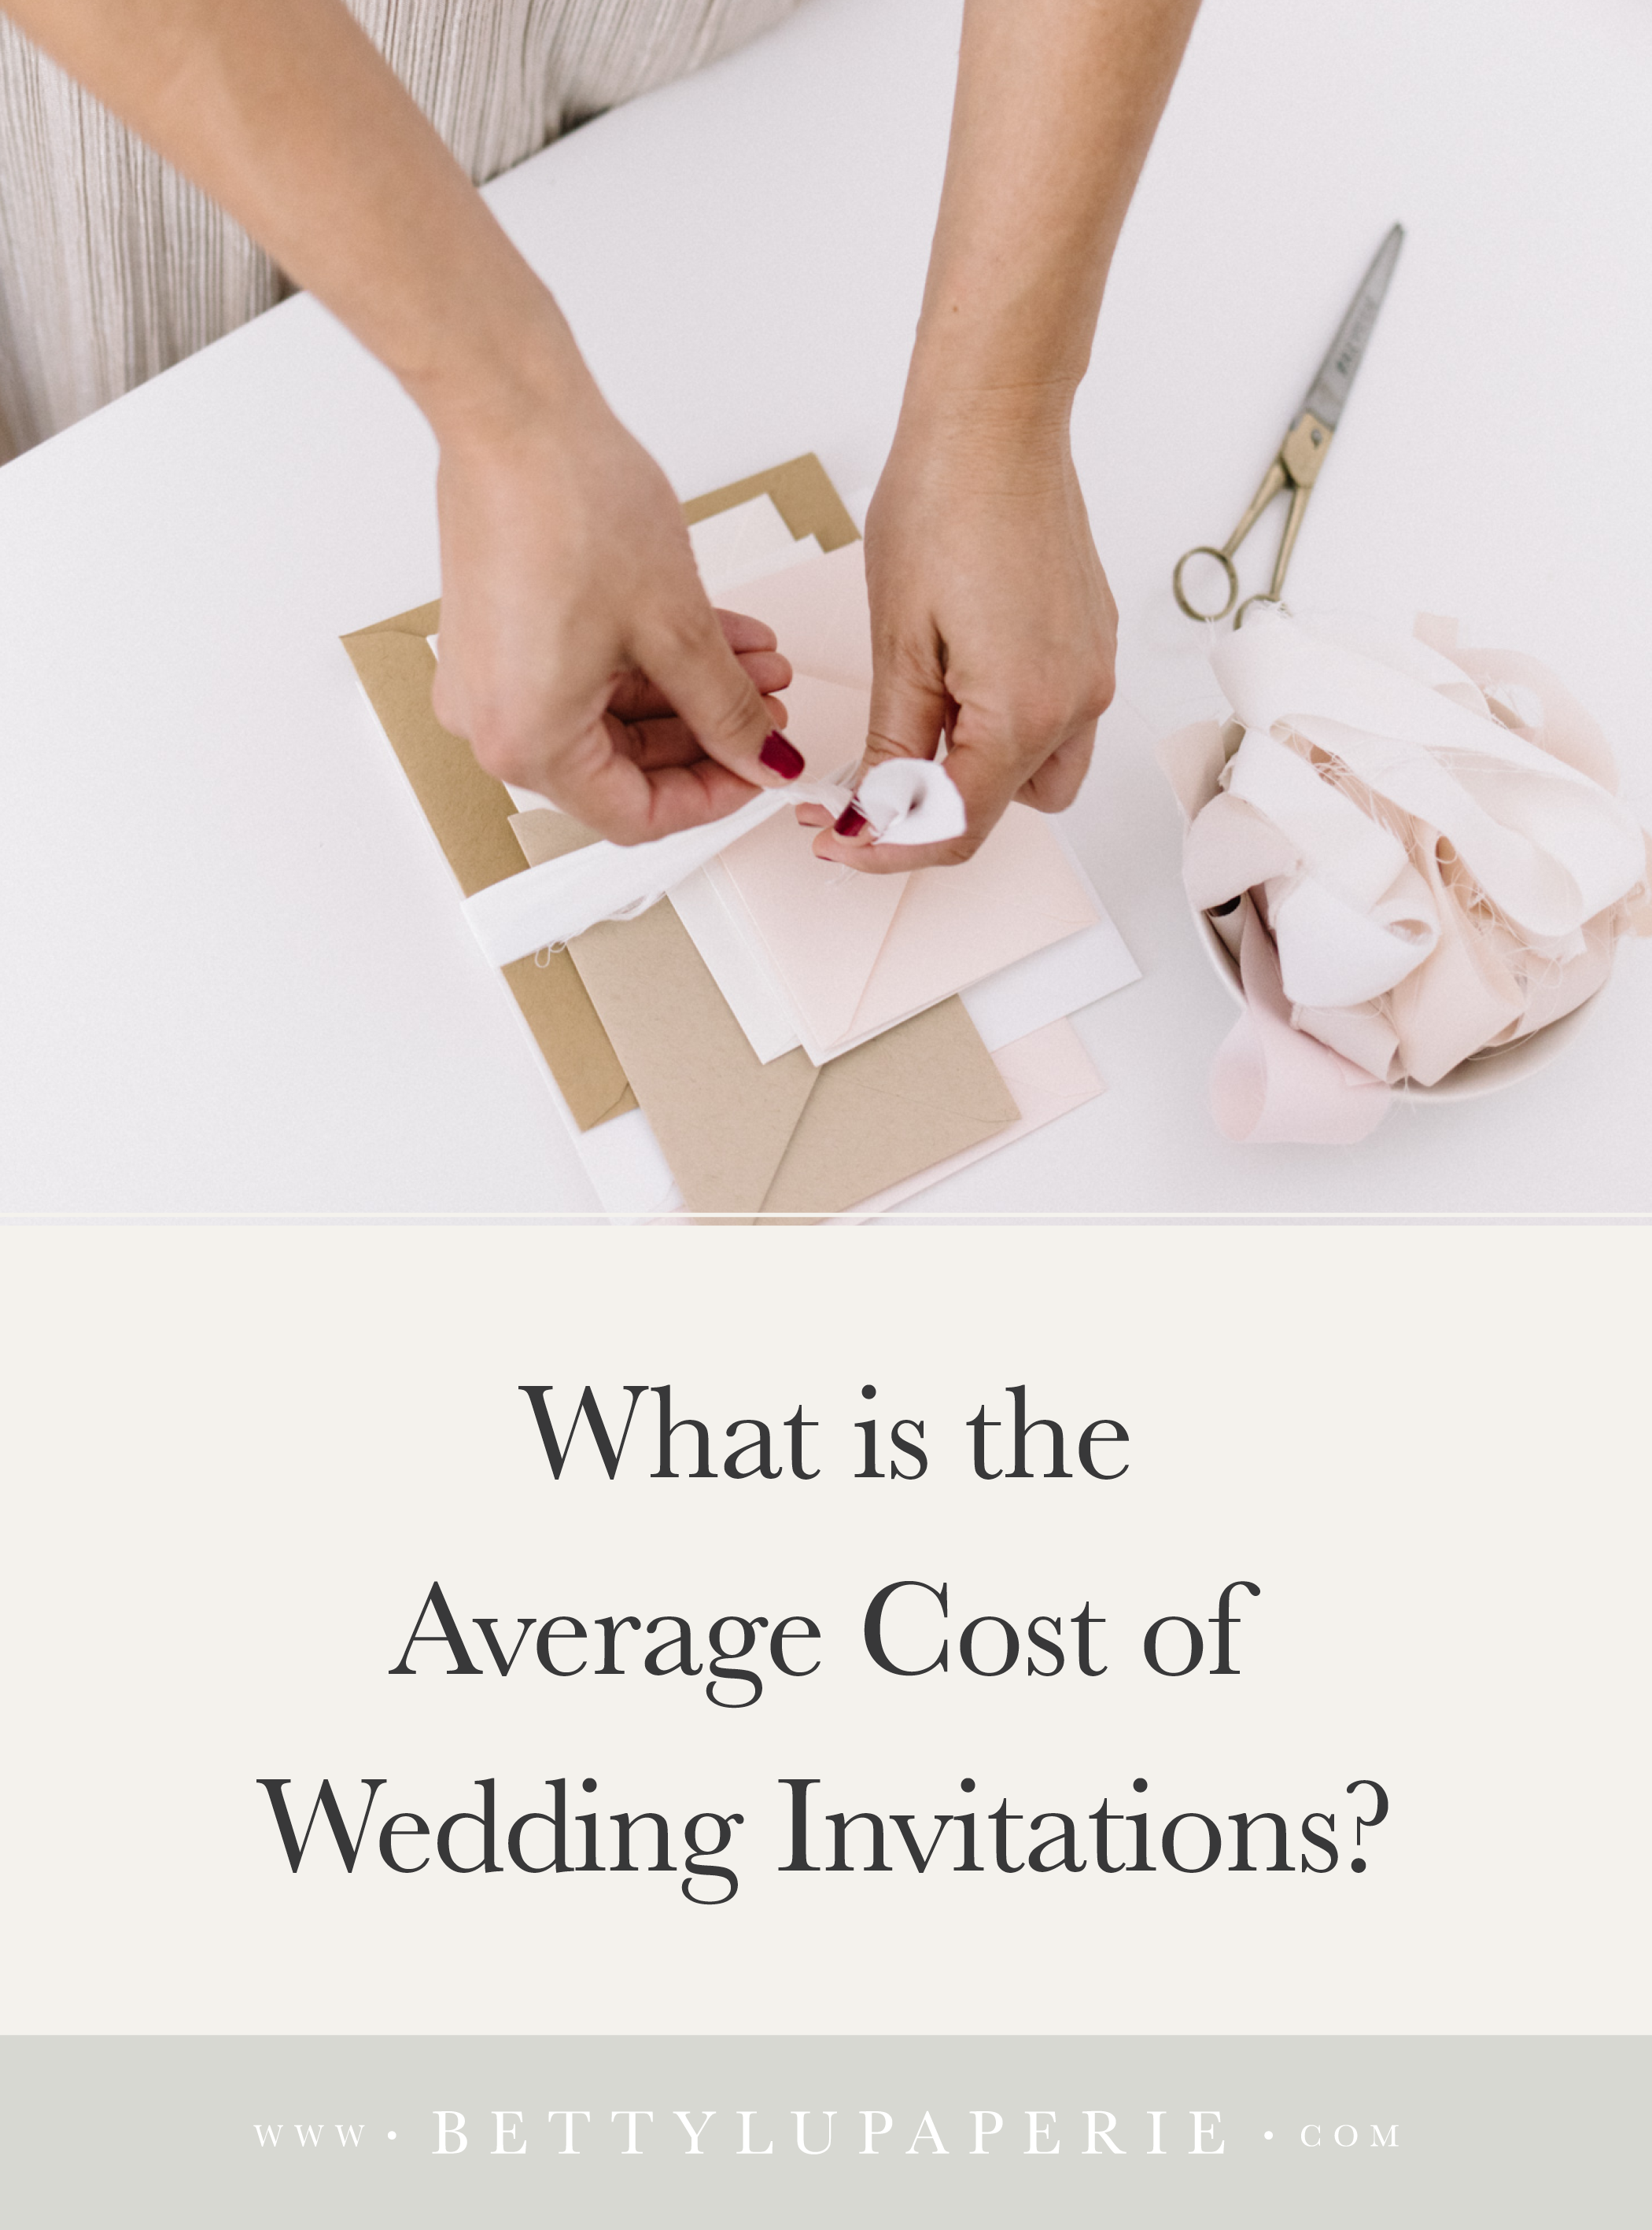 Tips For Choosing Average Cost Of Wedding Invitations Free Alluring Layout The Silverlininginvi Wedding Invitation Prices Wedding Costs Wedding Invitations